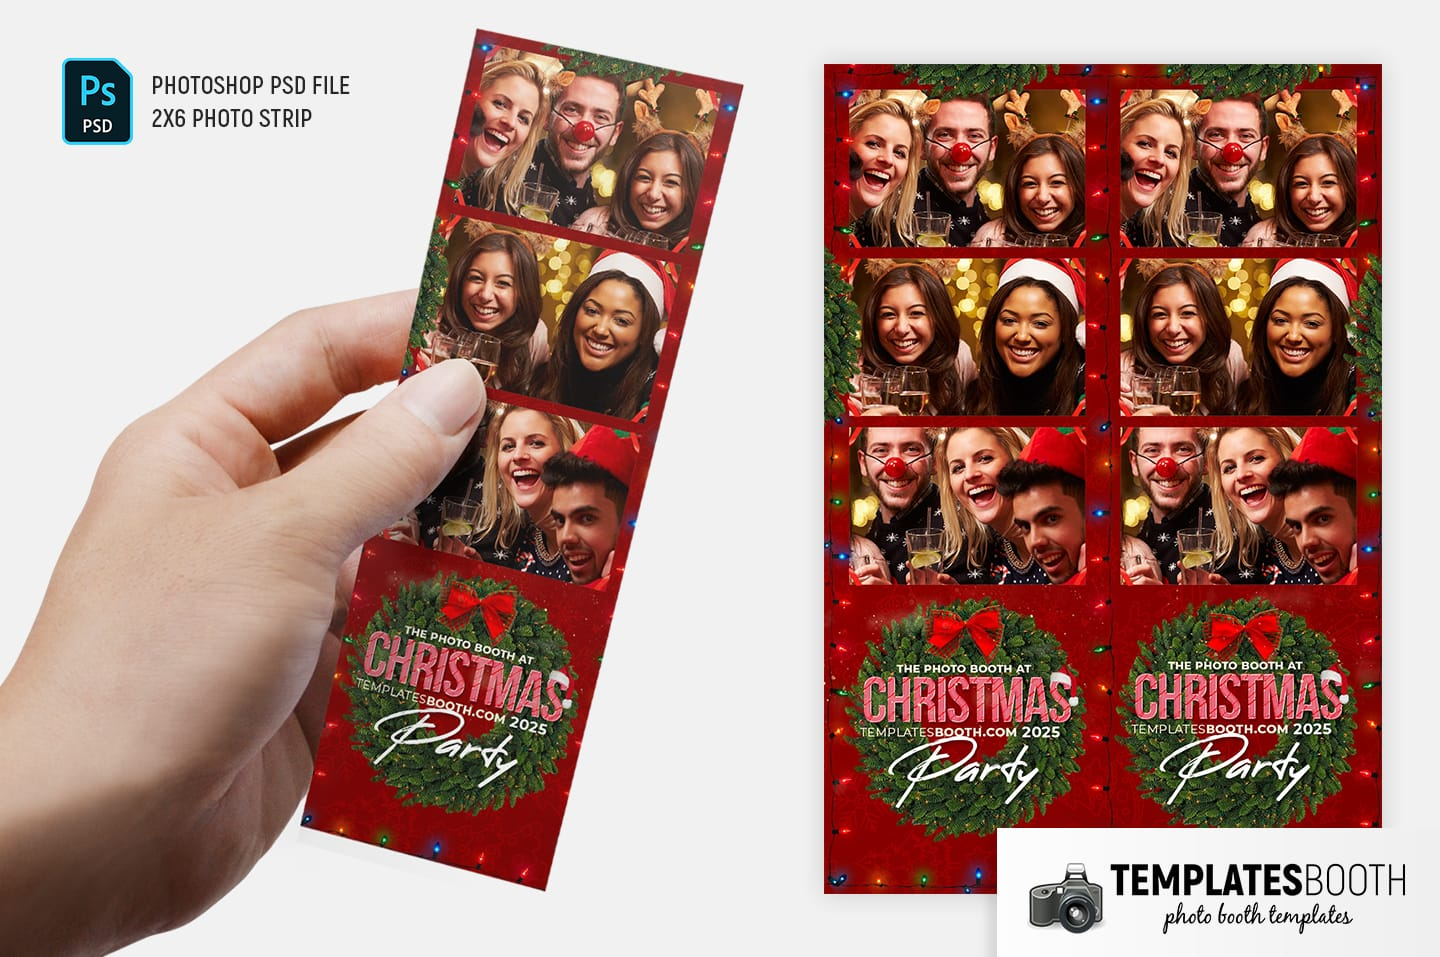 Christmas Party Photo Booth Template (2x6 Photo Strip)